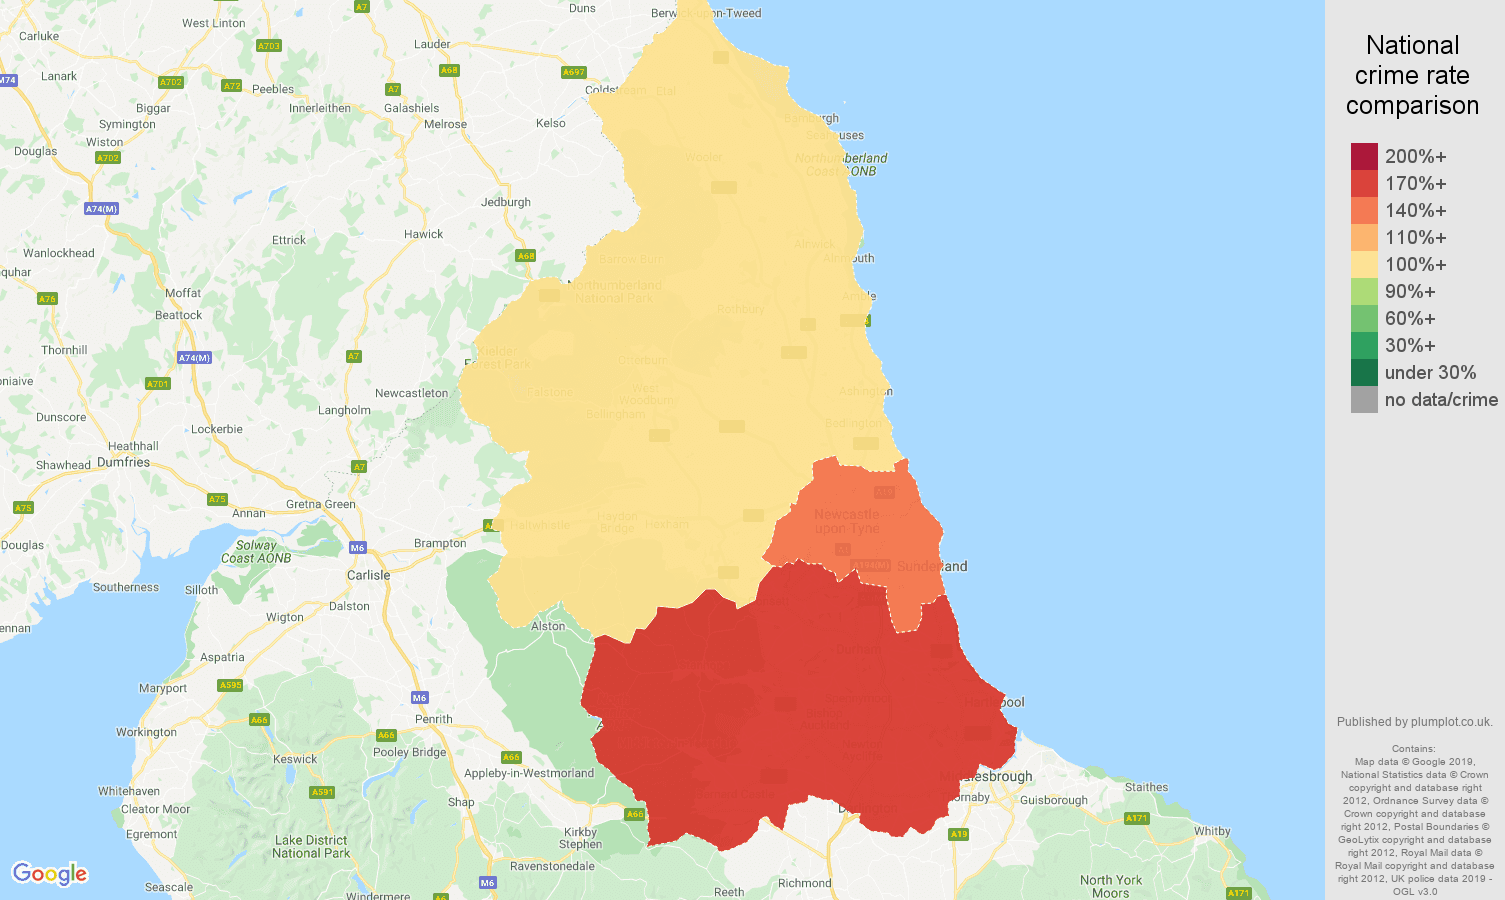 North East shoplifting crime rate comparison map